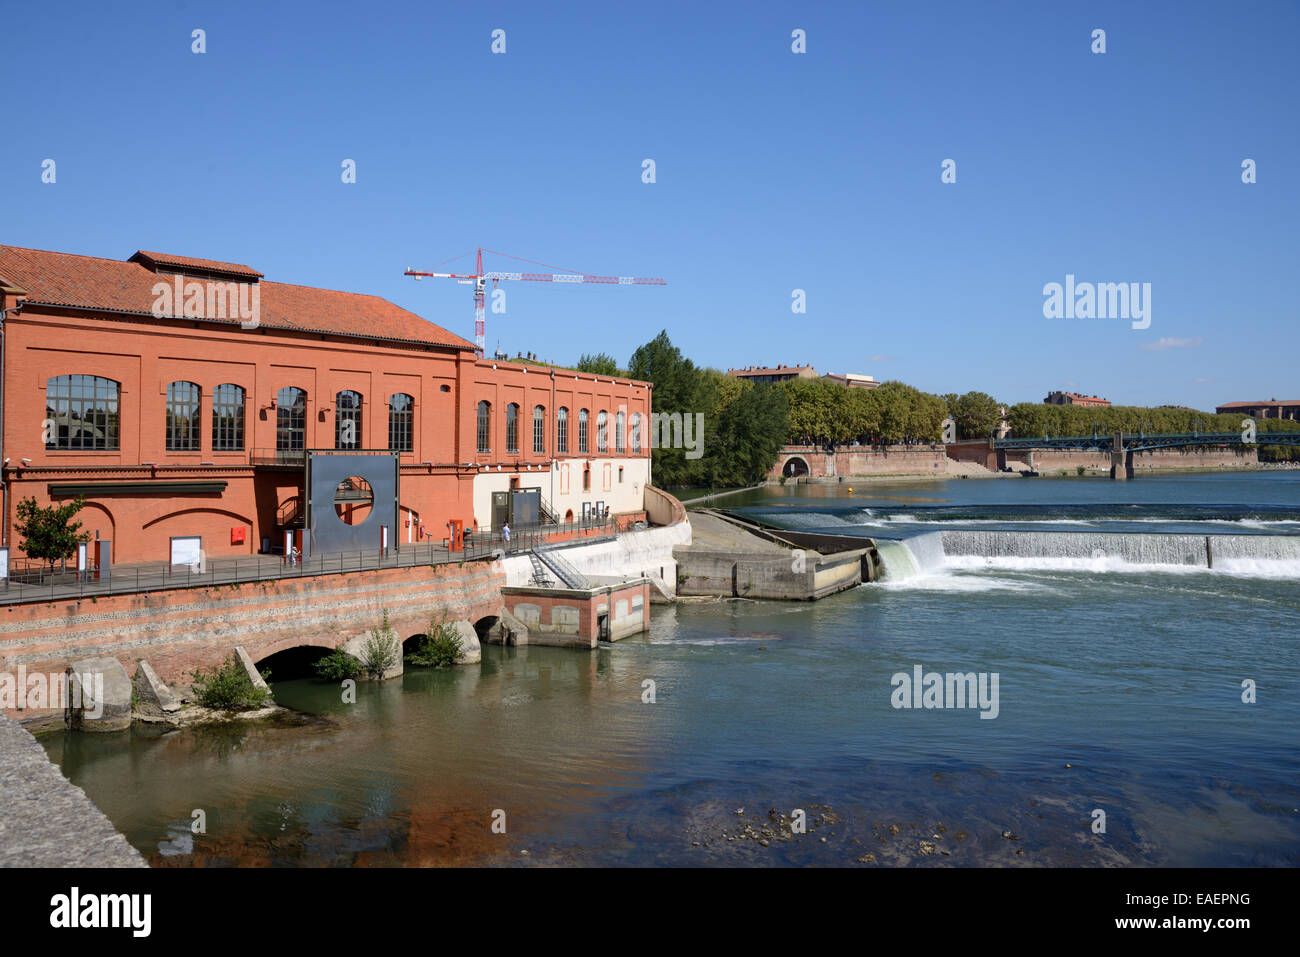 Bazacle Hydro-Electric Barrage or Dam on the River Garonne Toulouse France - Stock Image